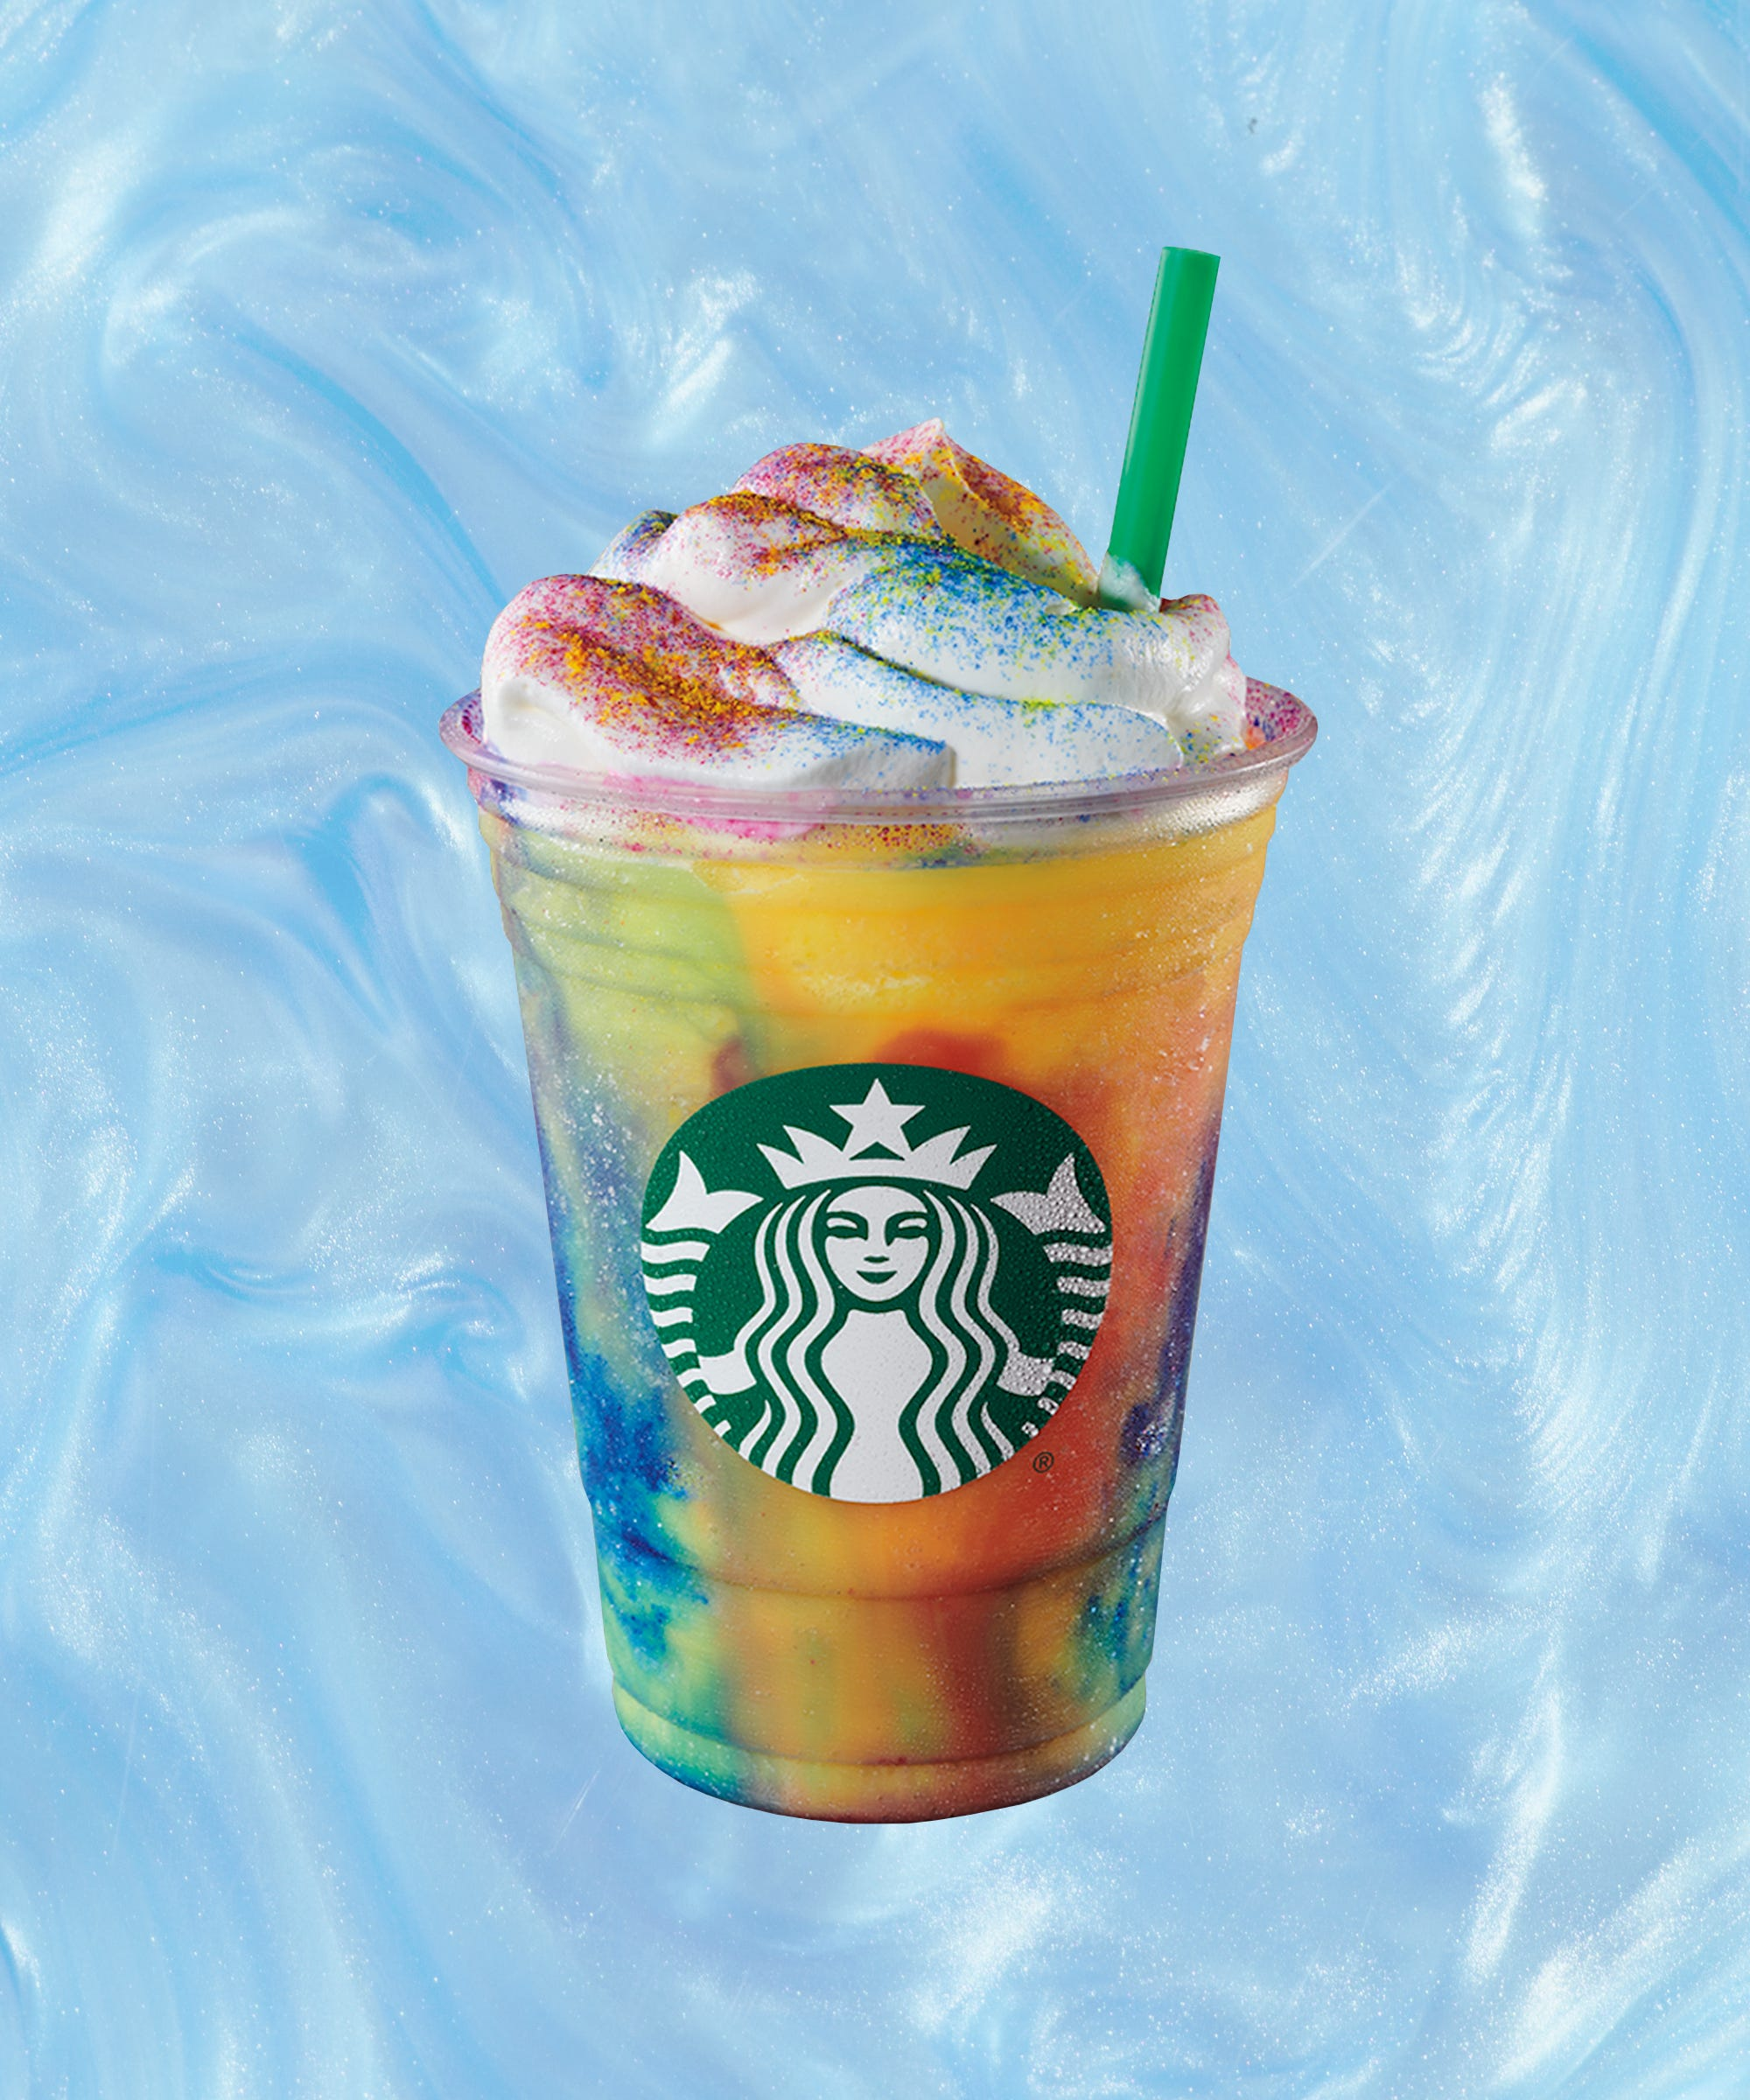 The Rumors Are True: Tie-Dyed Frappuccinos Are Coming To A Starbucks Near You